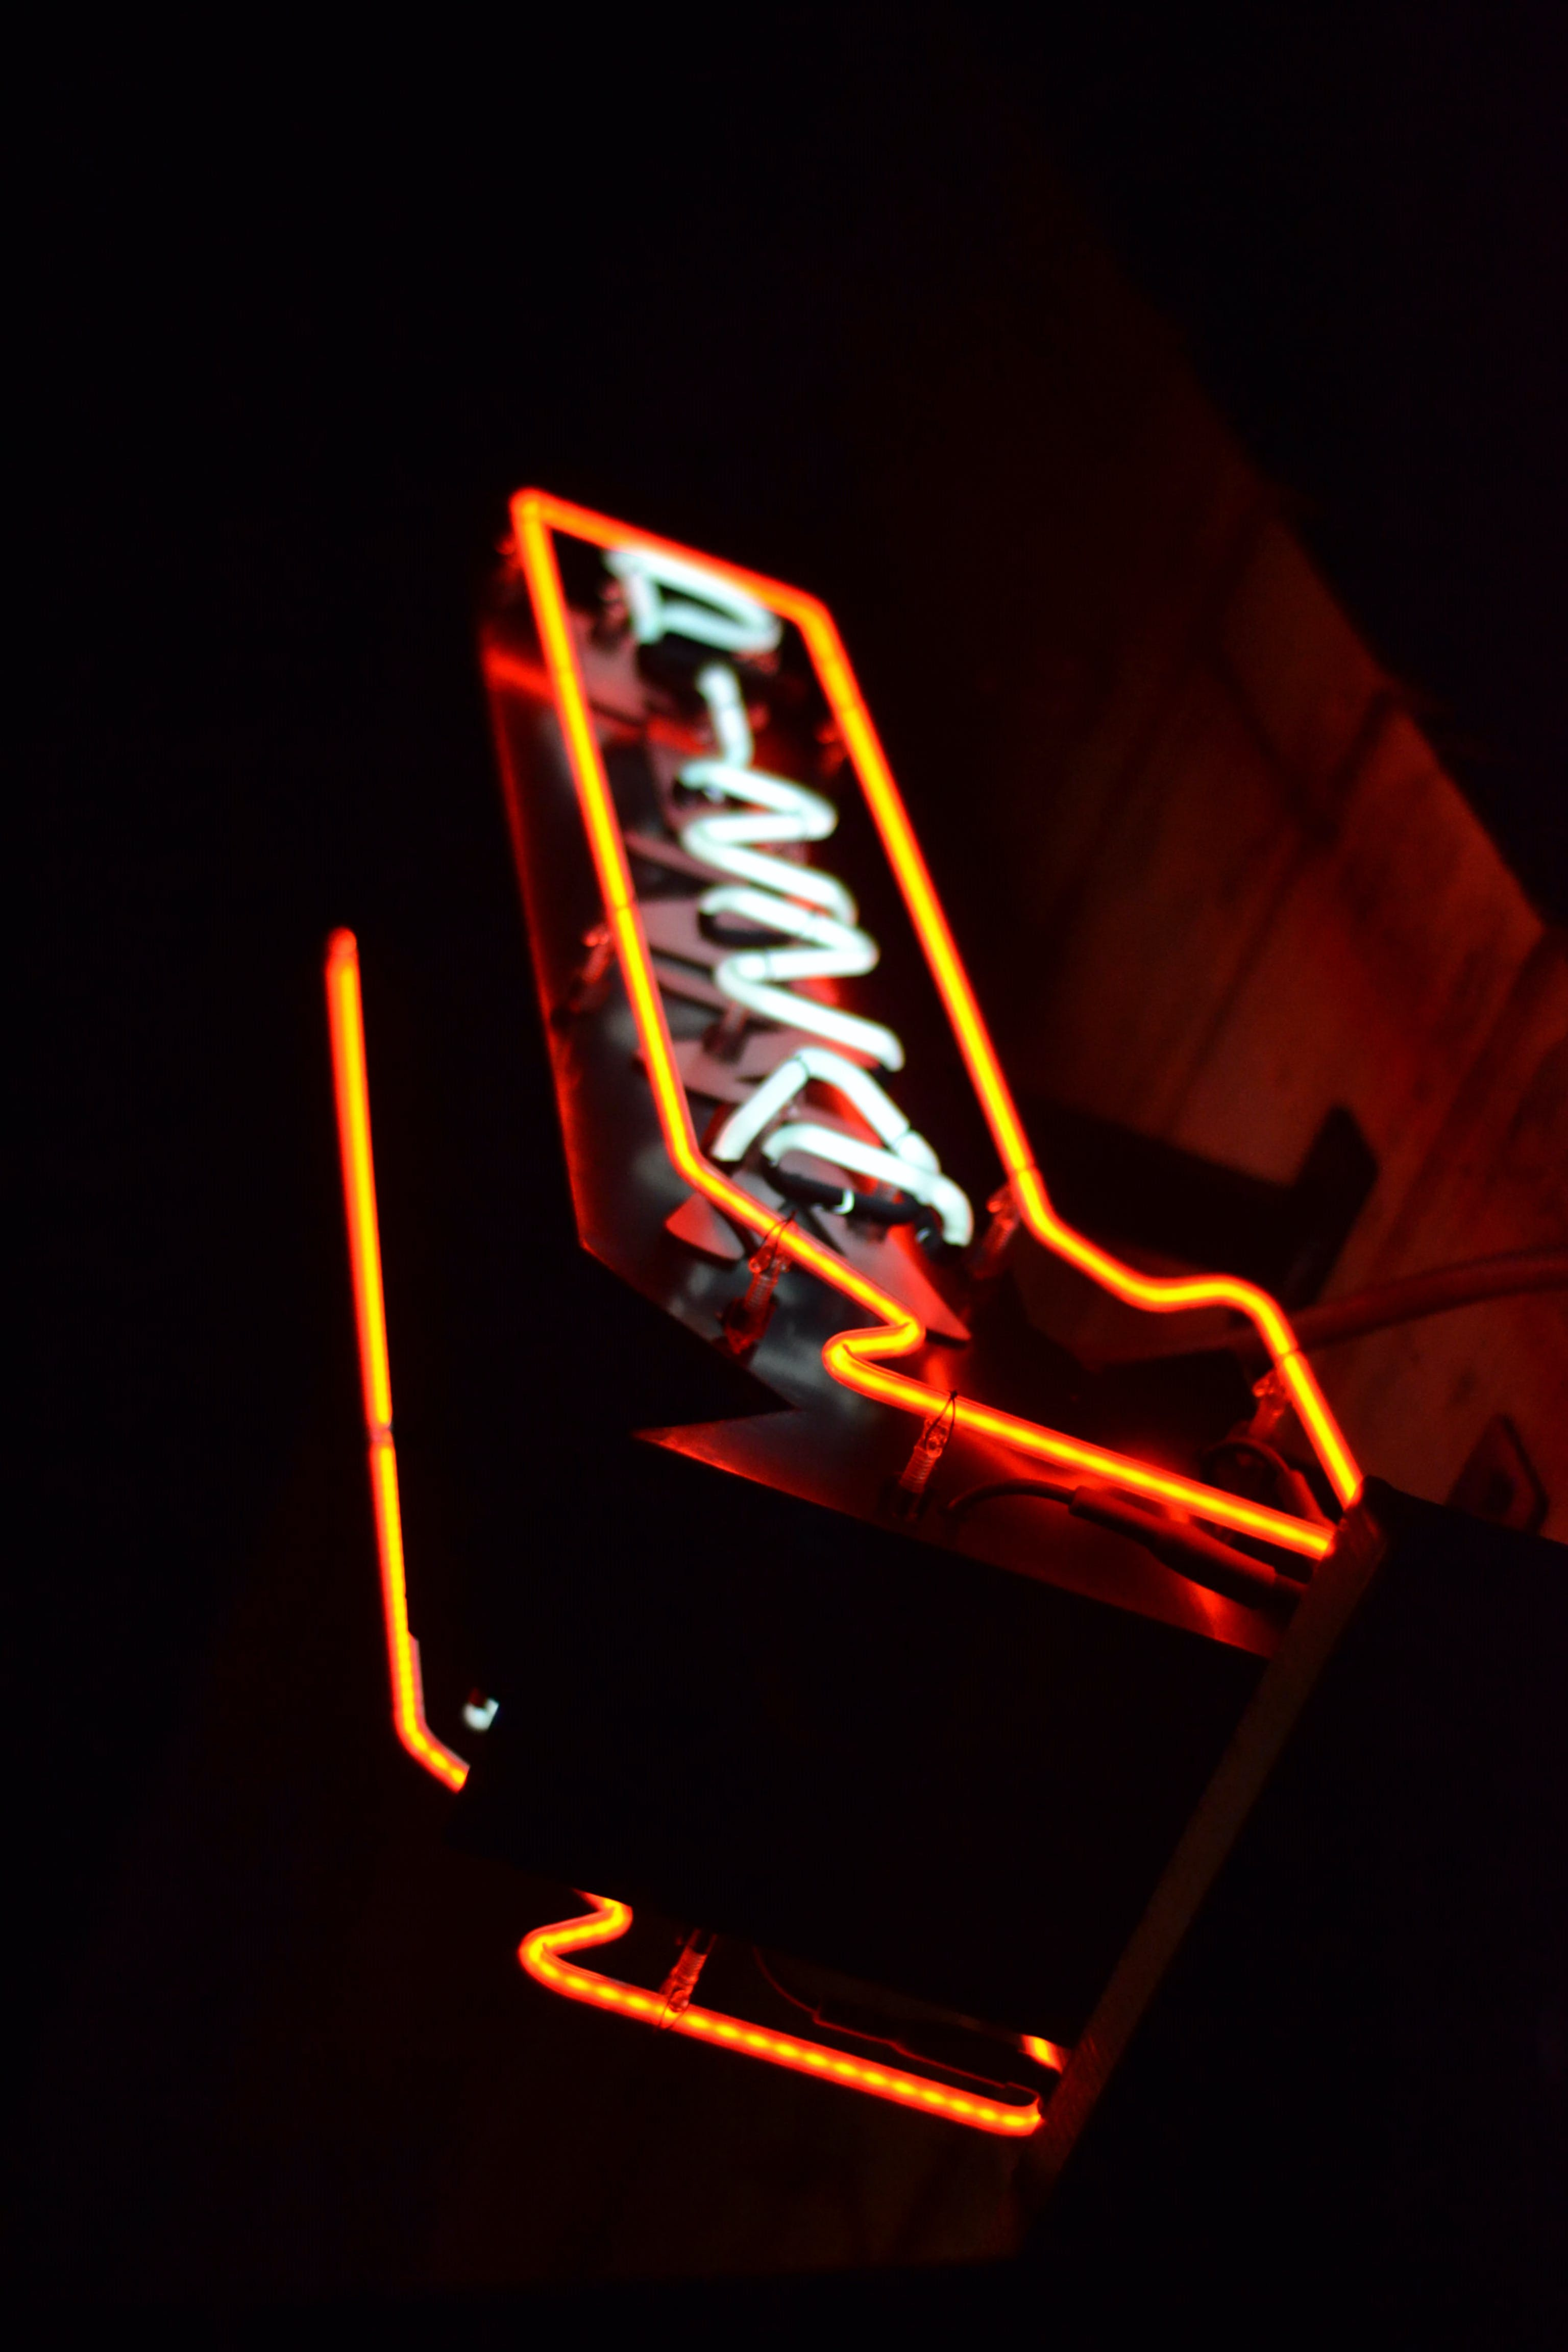 Lighted Pizza Neon Signage